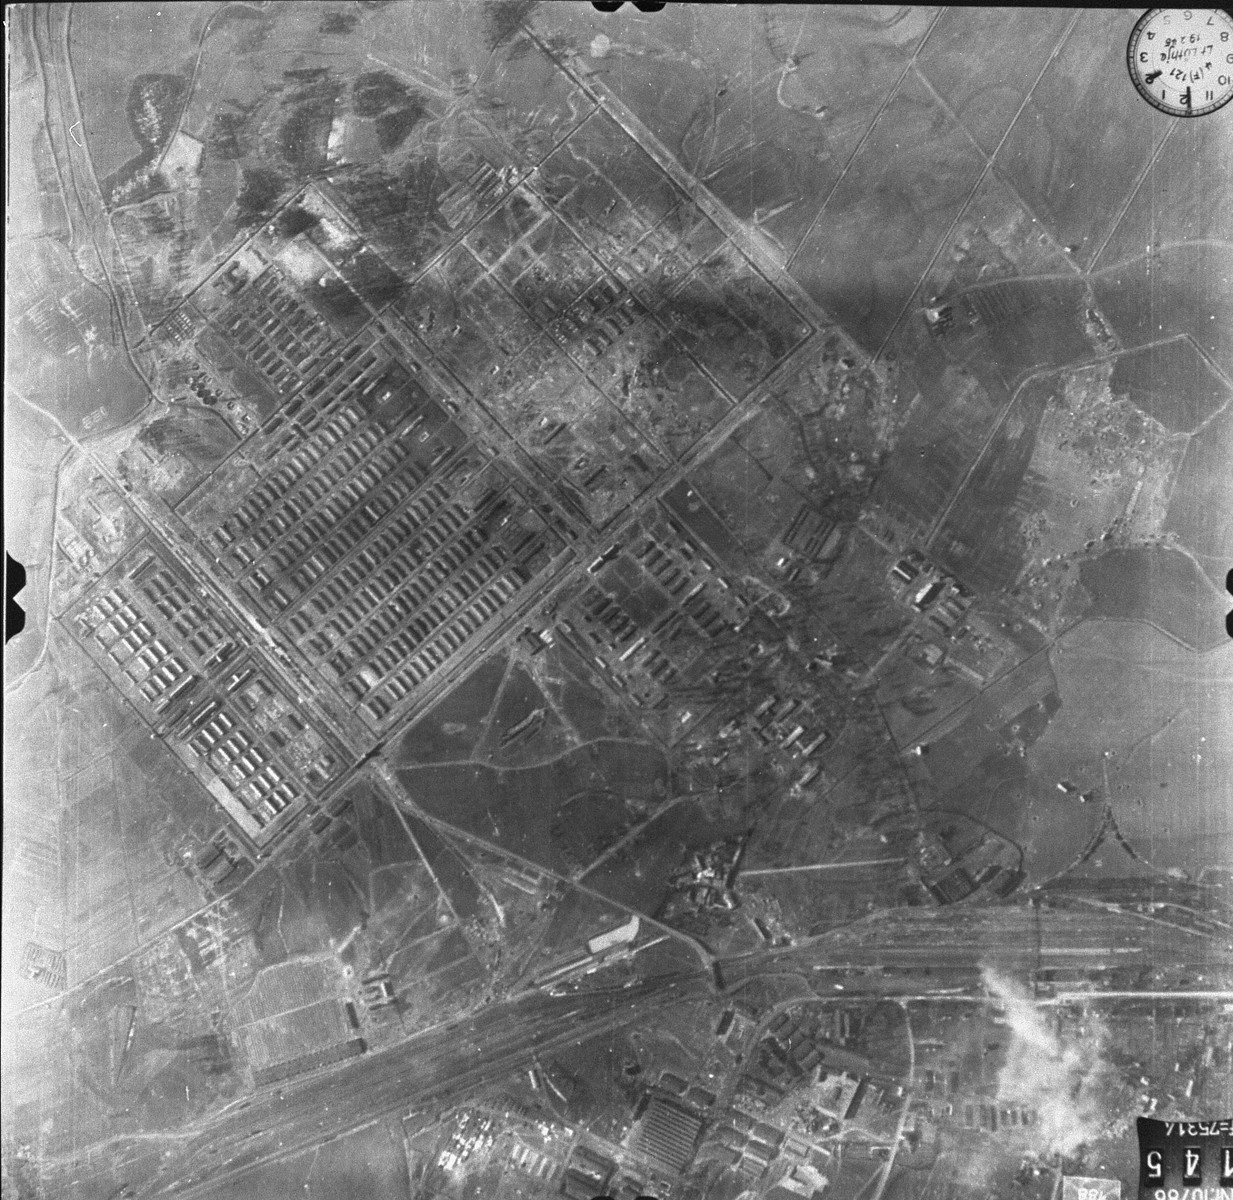 A German aerial photograph of the Auschwitz area.